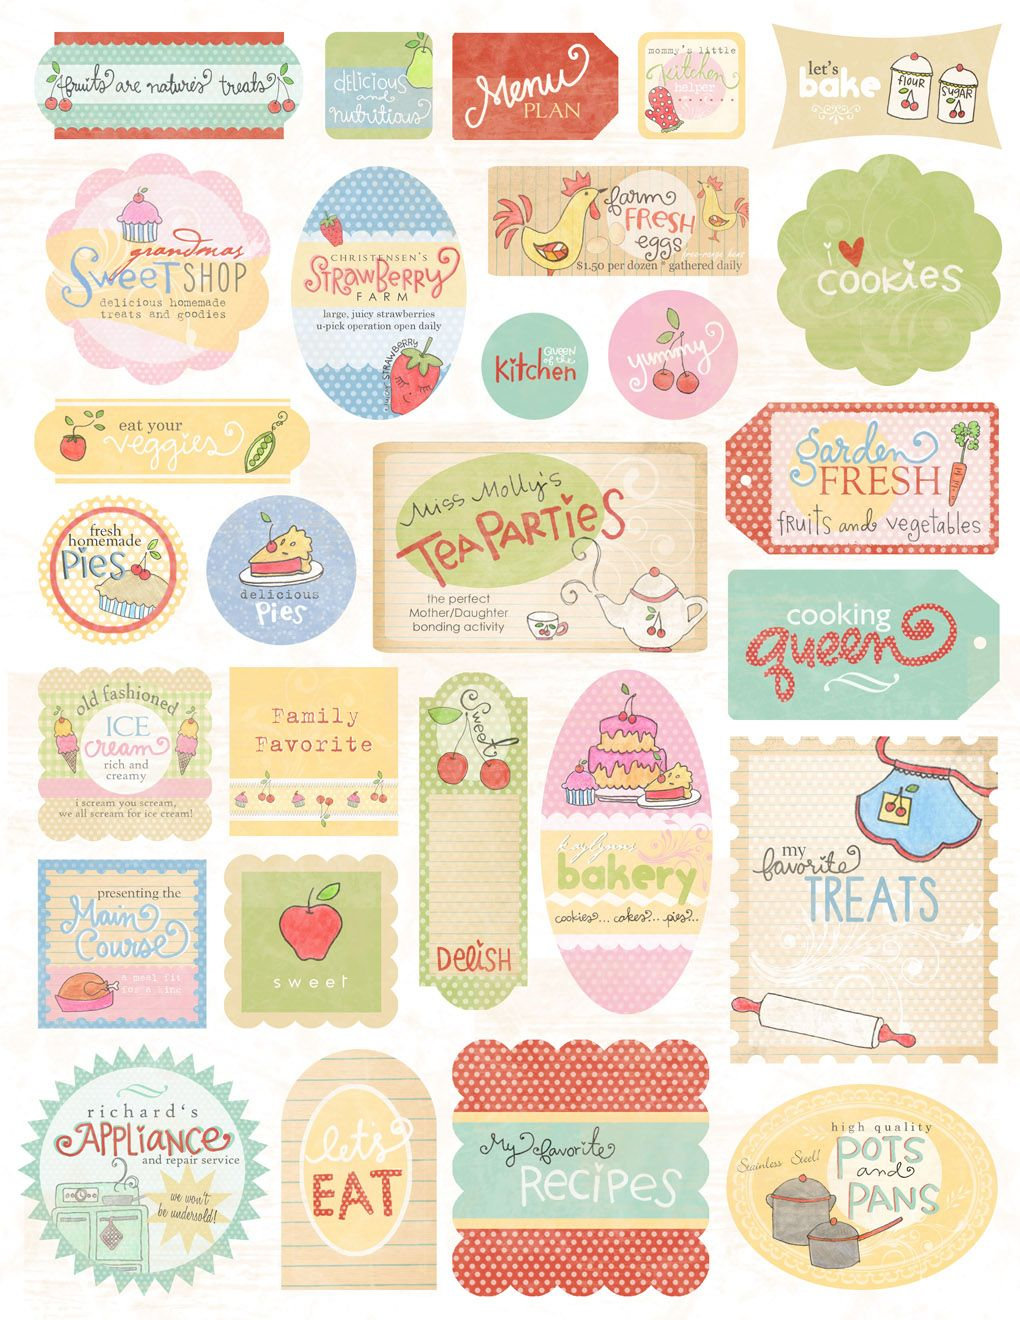 Scrapbook paper cooking - New This Week At Anchor Paper Express Melissa Frances Kitschy Kitchen We Got In 6 X 6 And 12 X 12 Paper Pads Recipe Cards Homemade And R